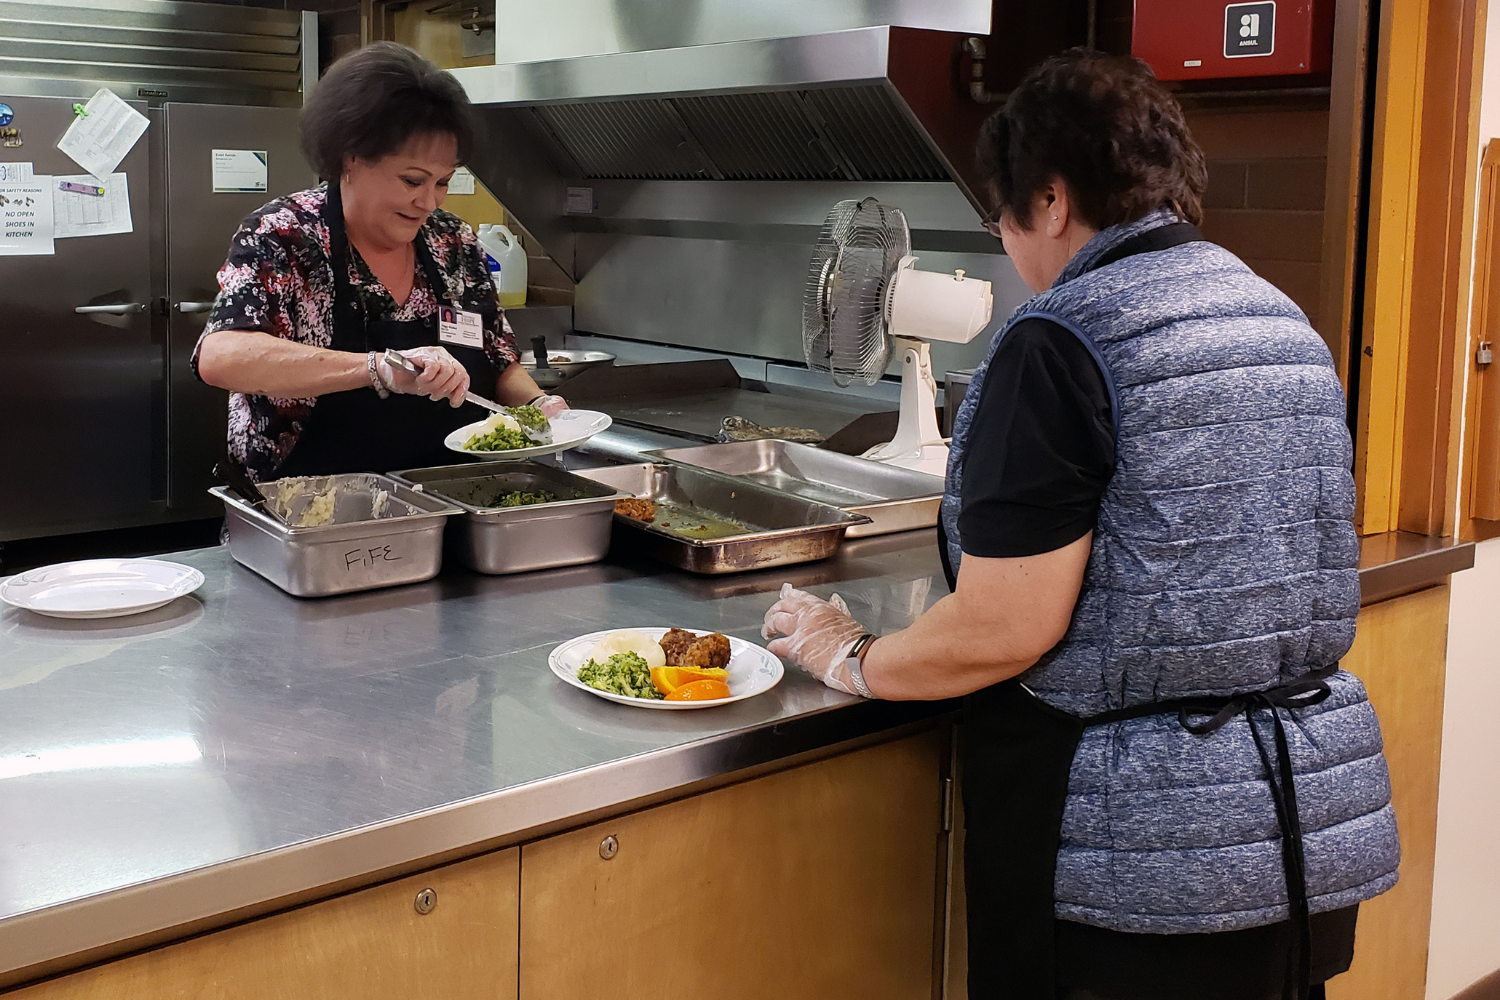 preparing lunch for seniors at Fife Community Center